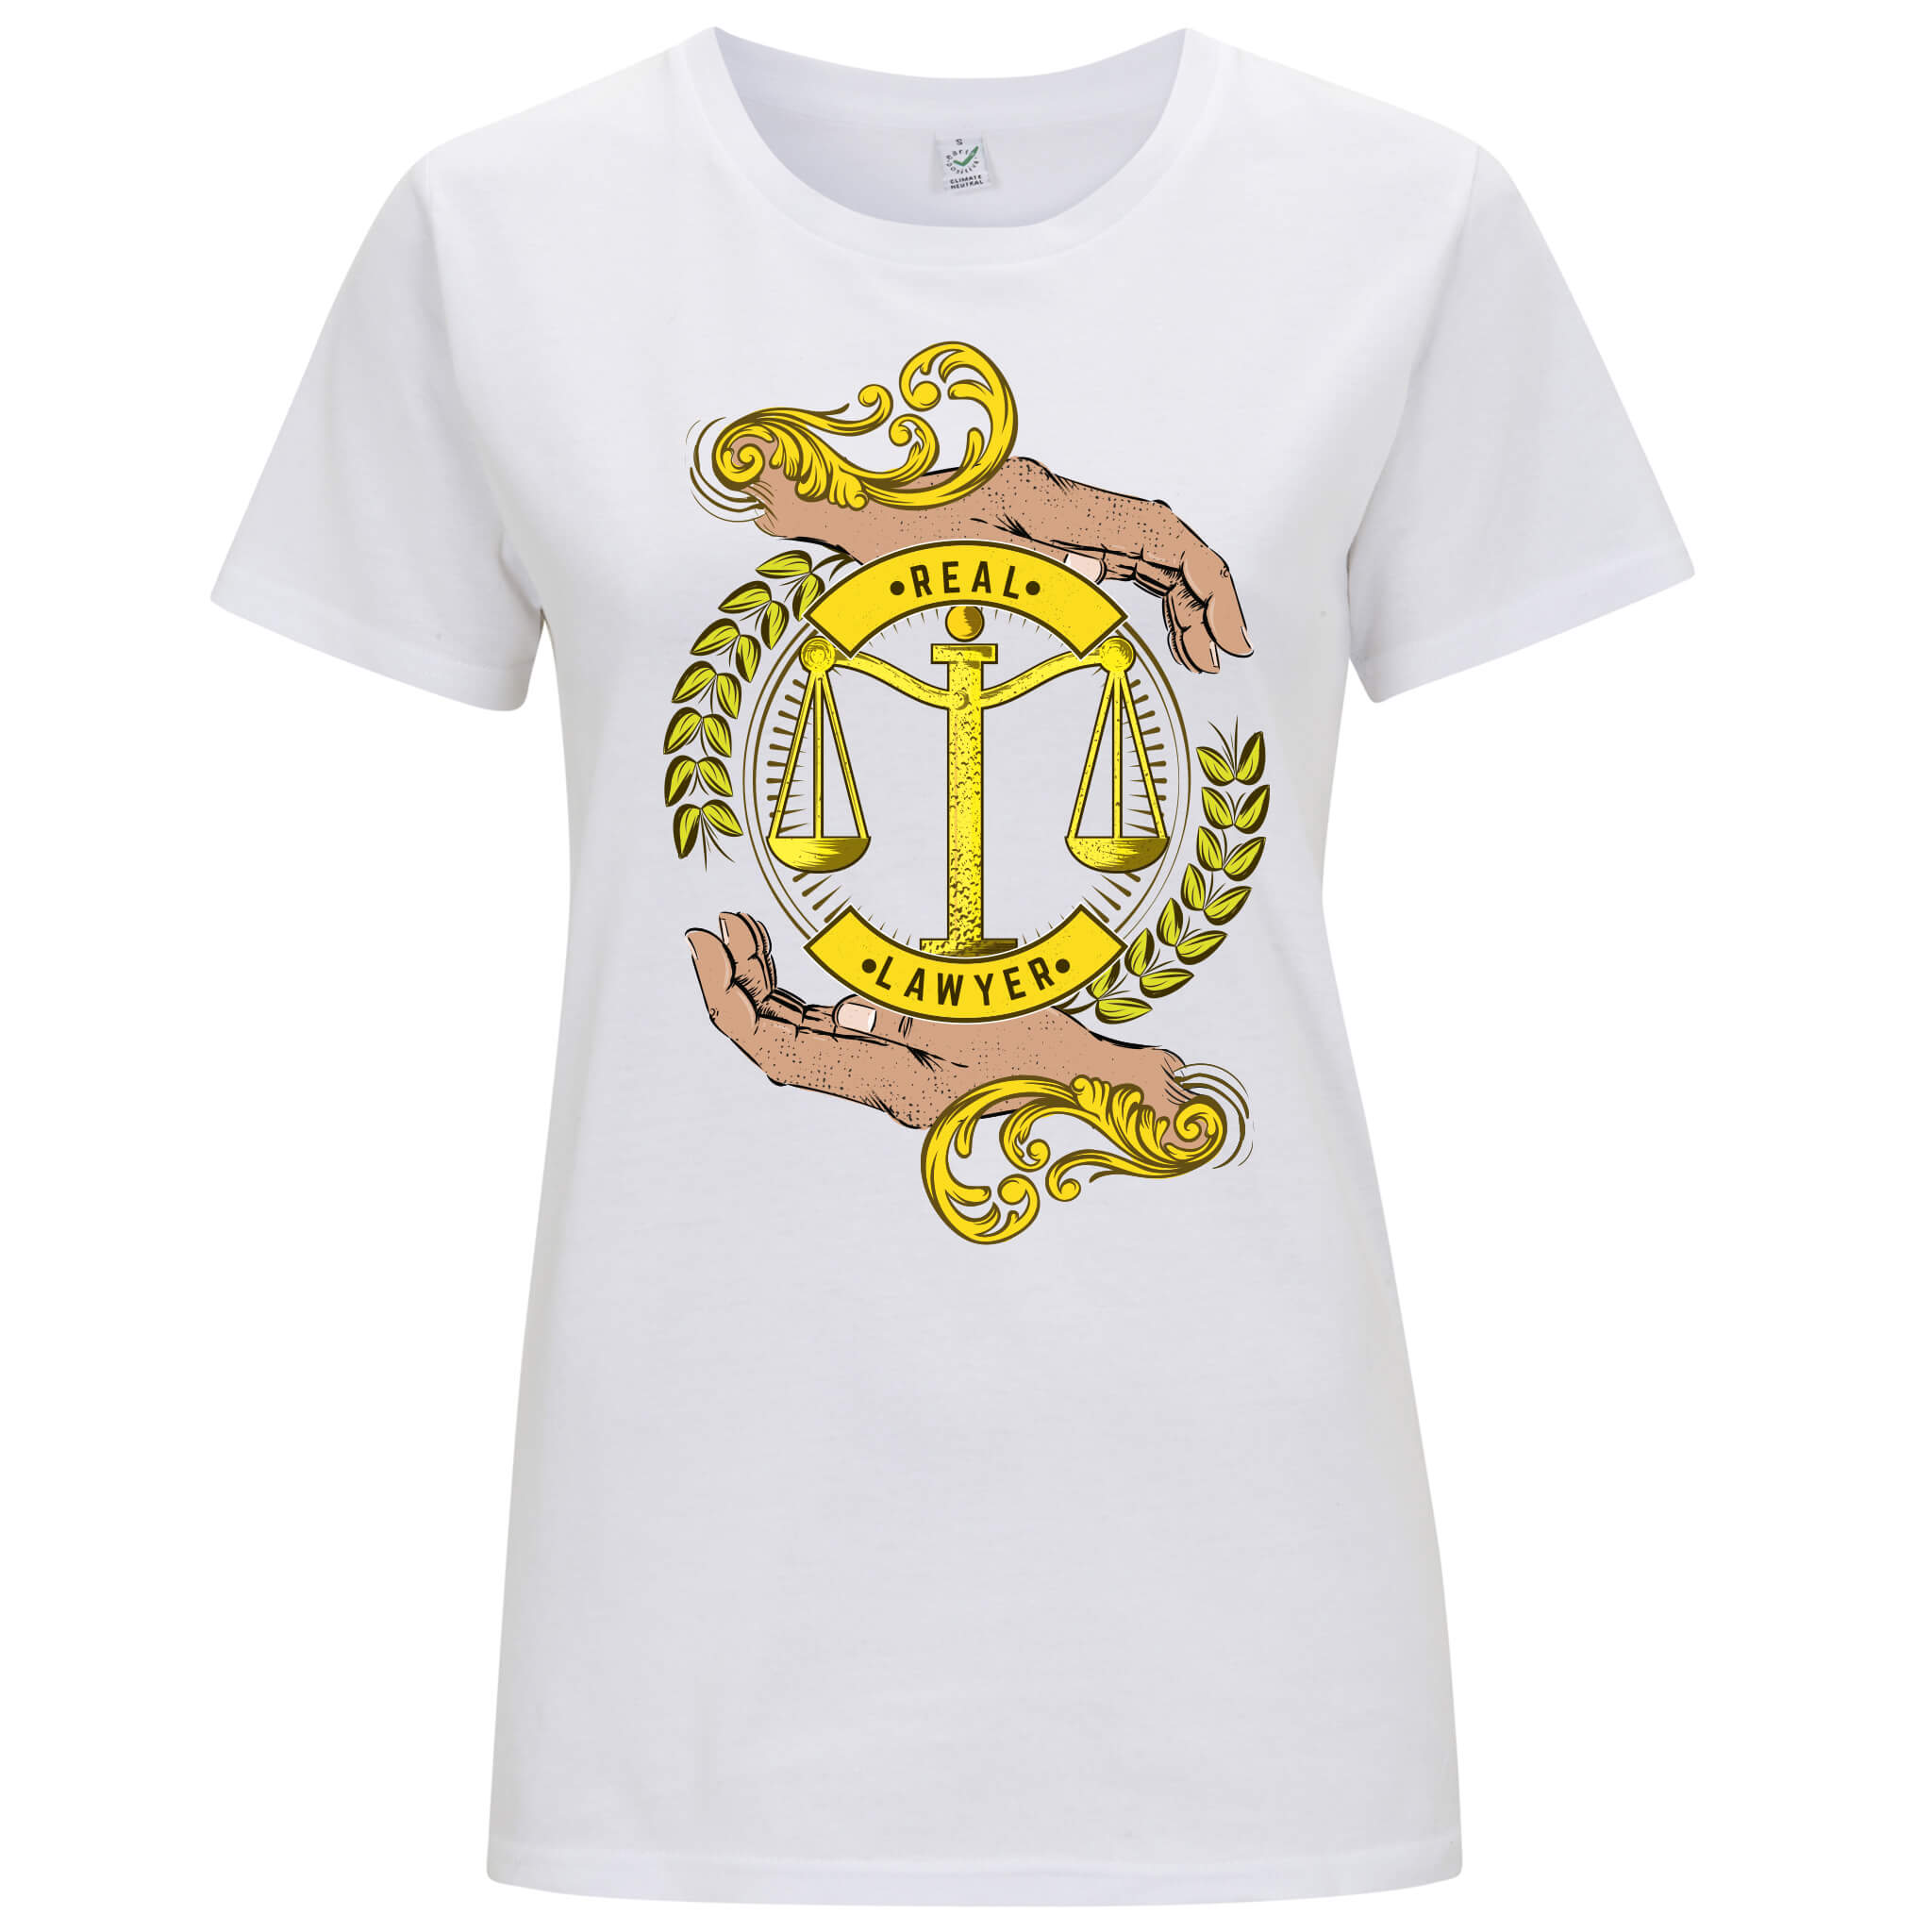 Laurea in legge - T-shirt Donna - T-Shirt by Fol The Brand